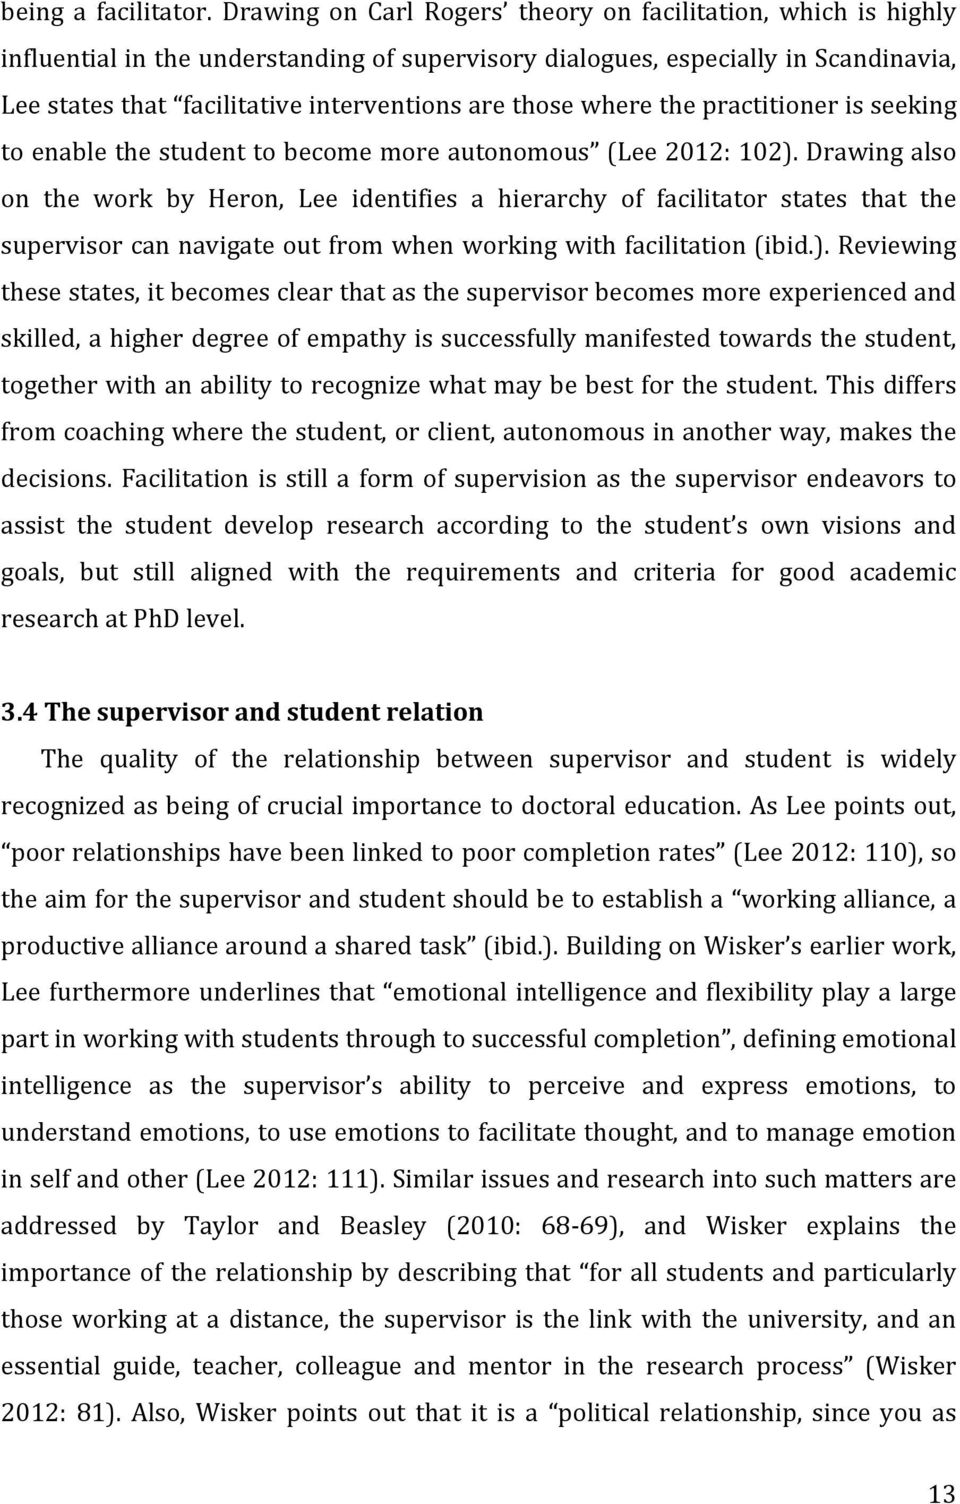 those where the practitioner is seeking to enable the student to become more autonomous (Lee 2012: 102).